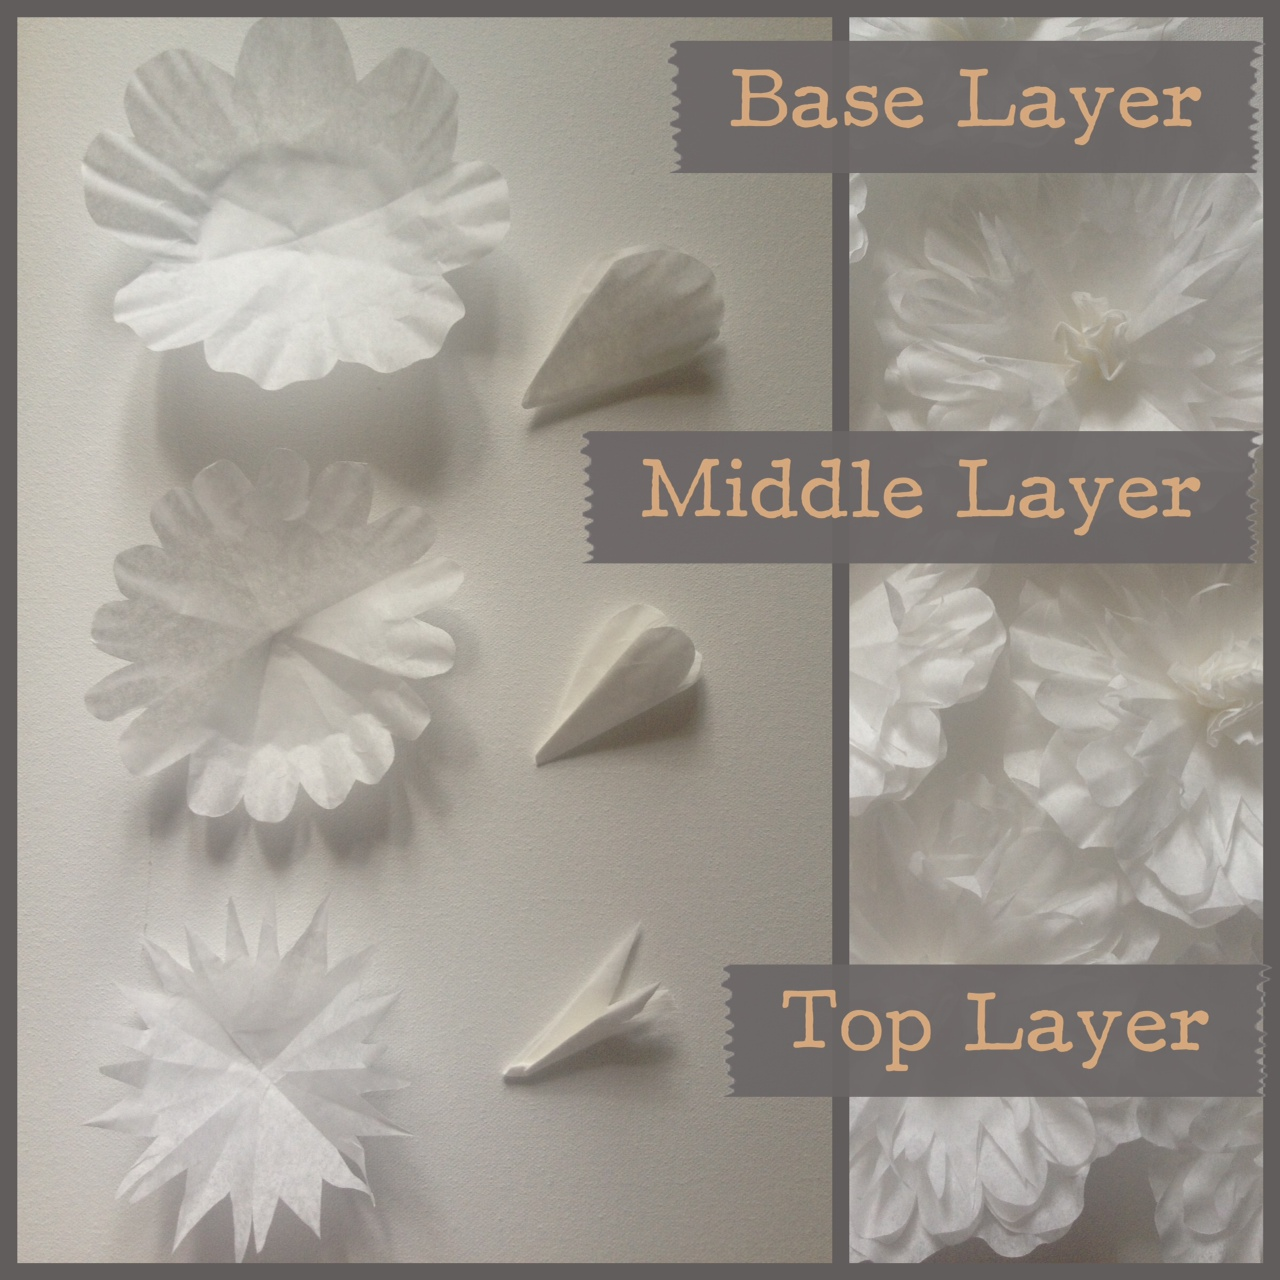 Pancakes Glue Guns Diy Paper Flower Wall Take 2 Part 1